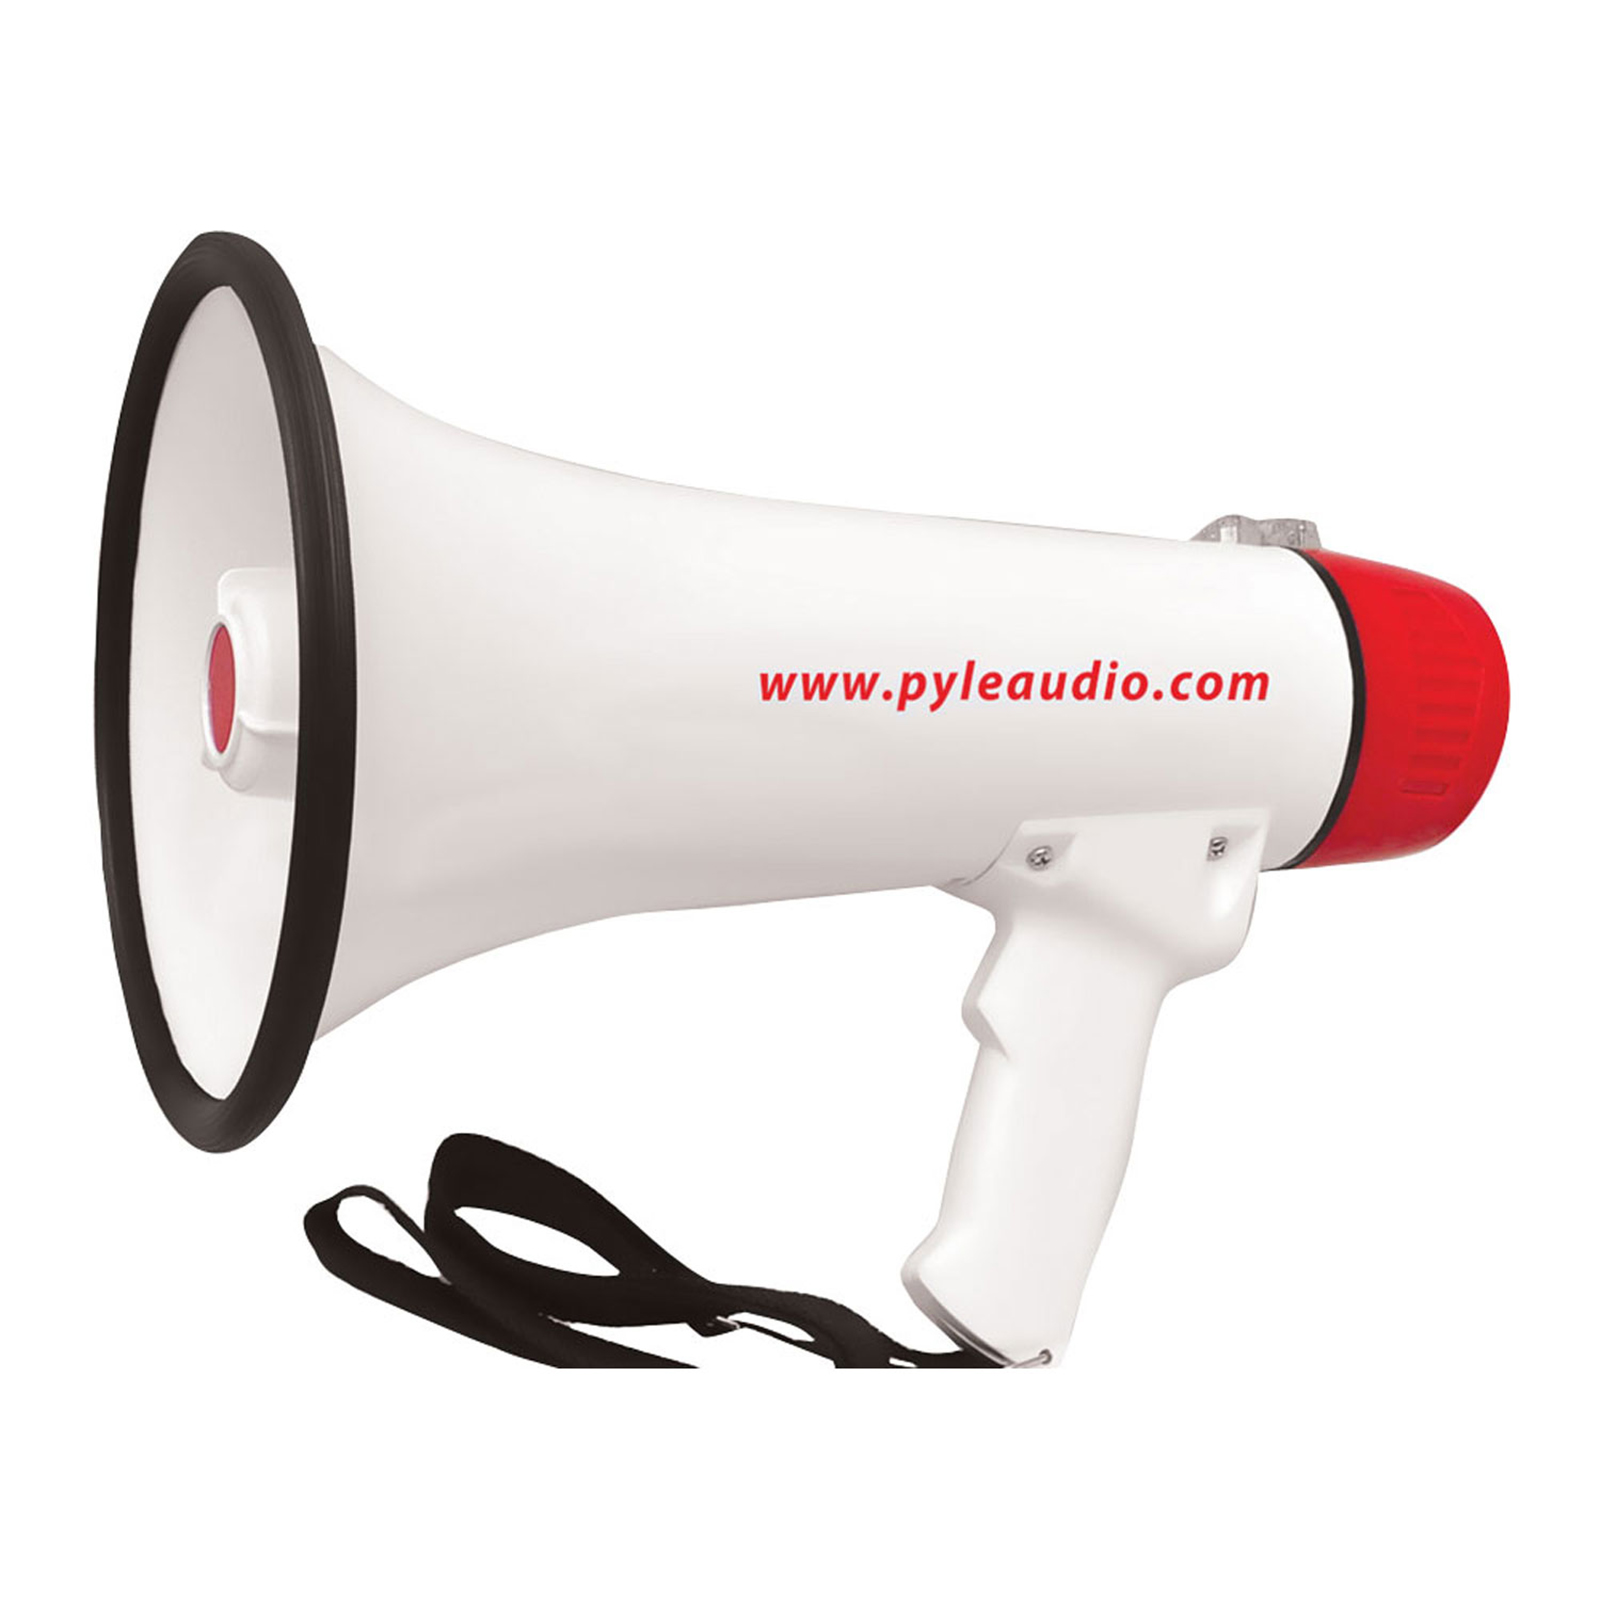 40 Watt Professional Megaphone/Bullhorn with Handheld Mic /Siren and Aux In For IOS/MP3 Devices